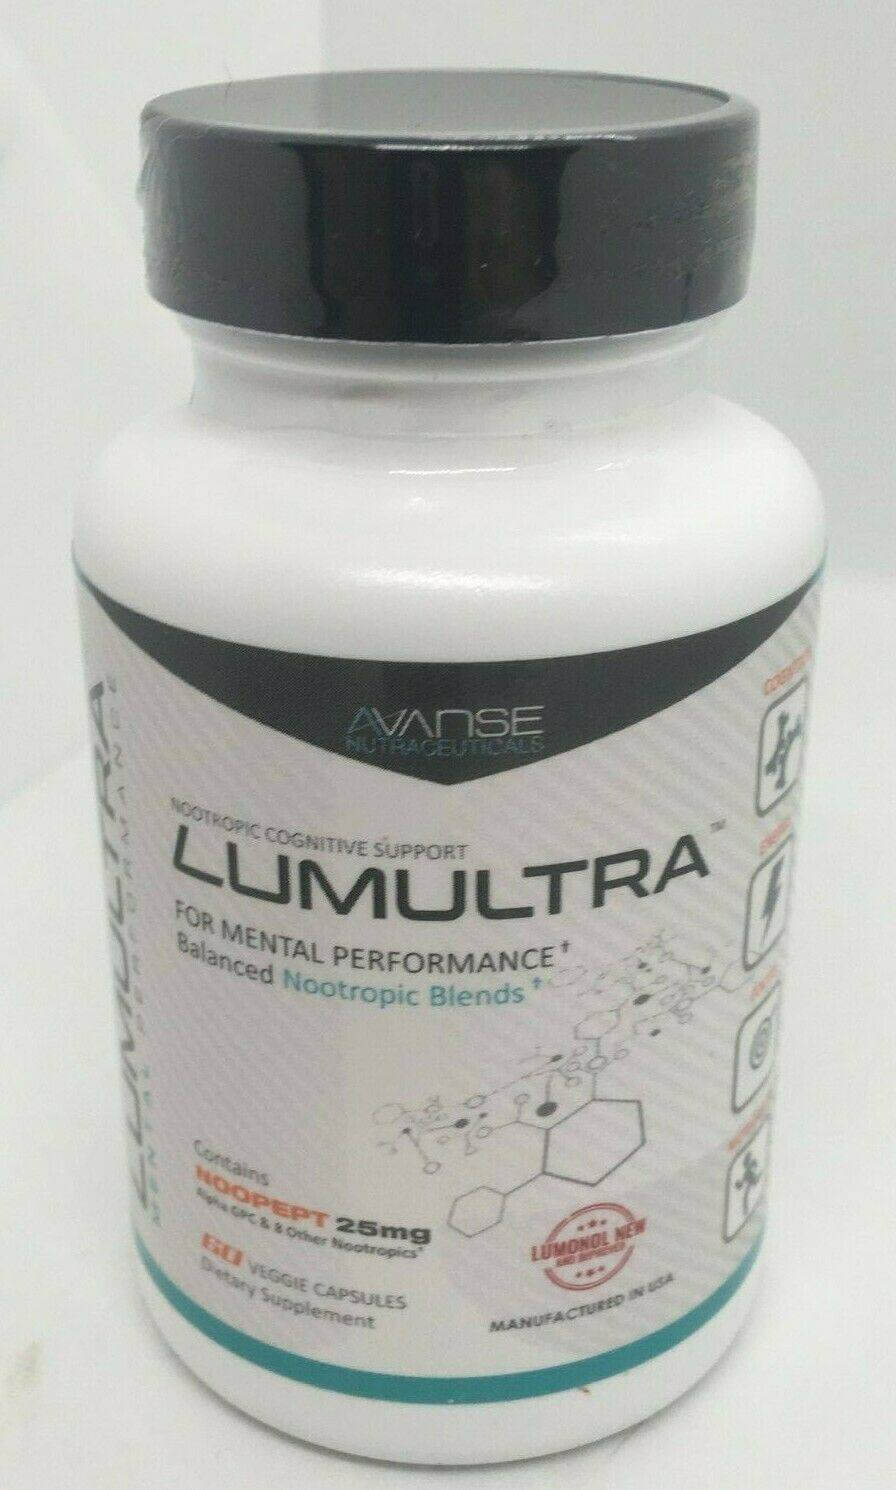 lumultra bottle